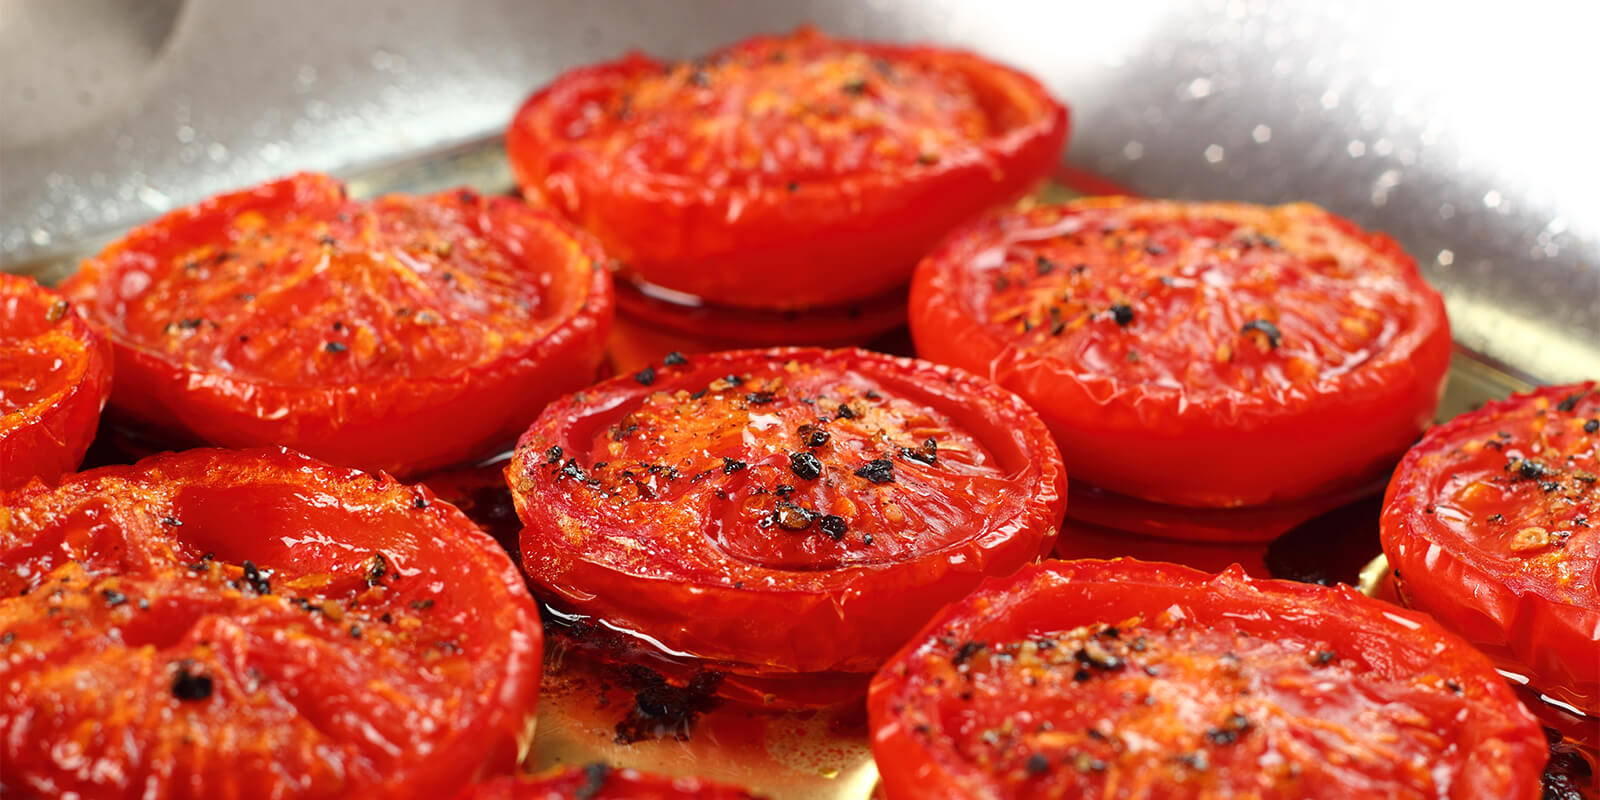 Roasted Tomatoes in a pan with oil.